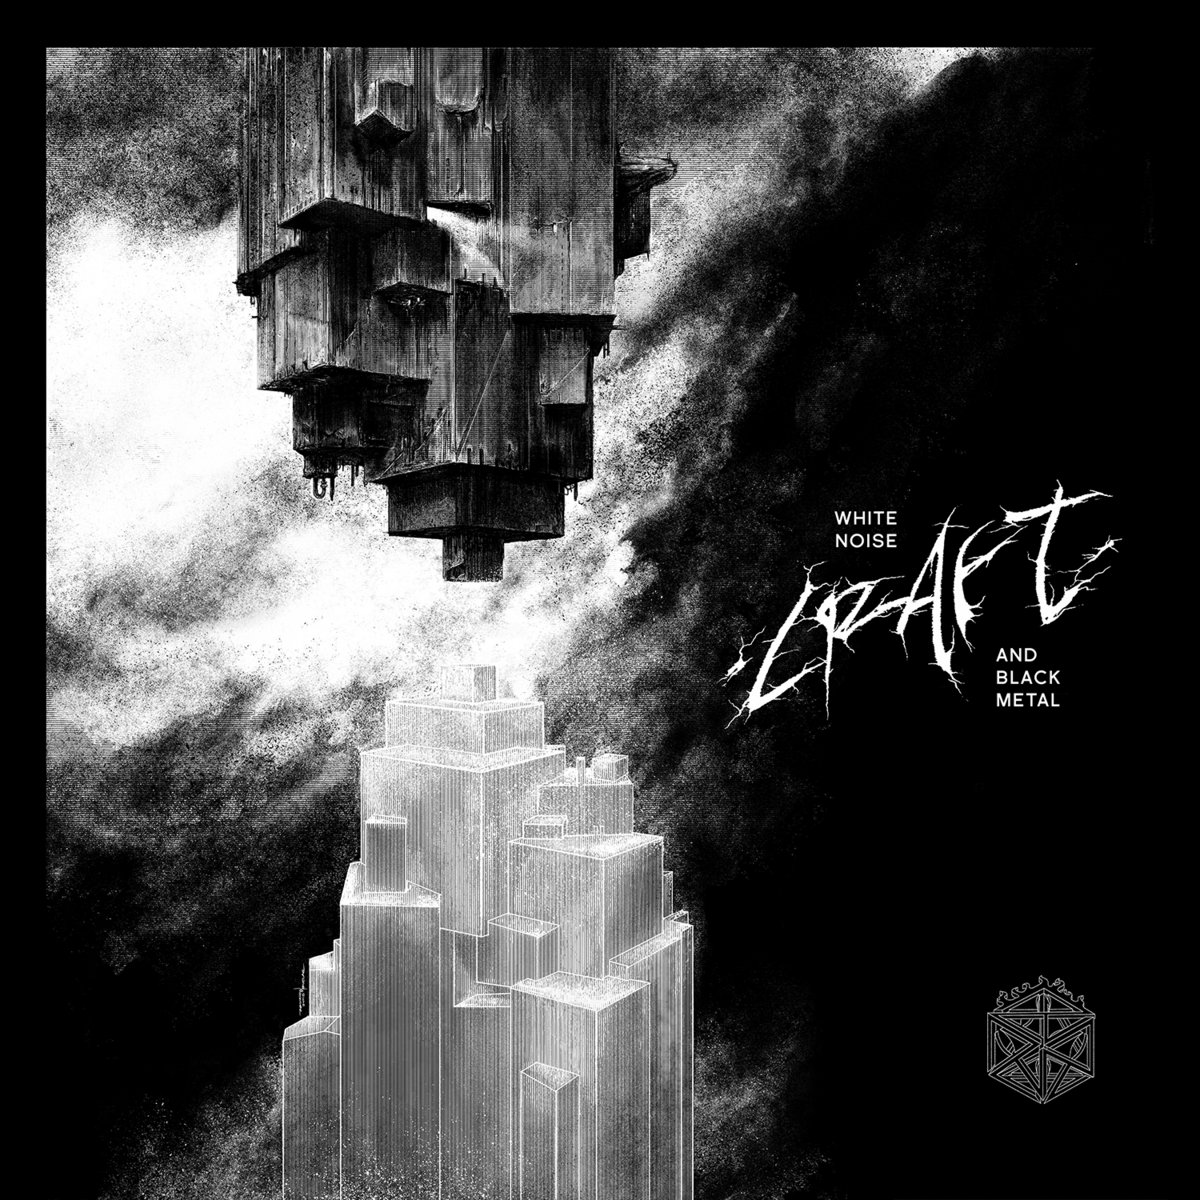 White Noise and Black Metal | Craft